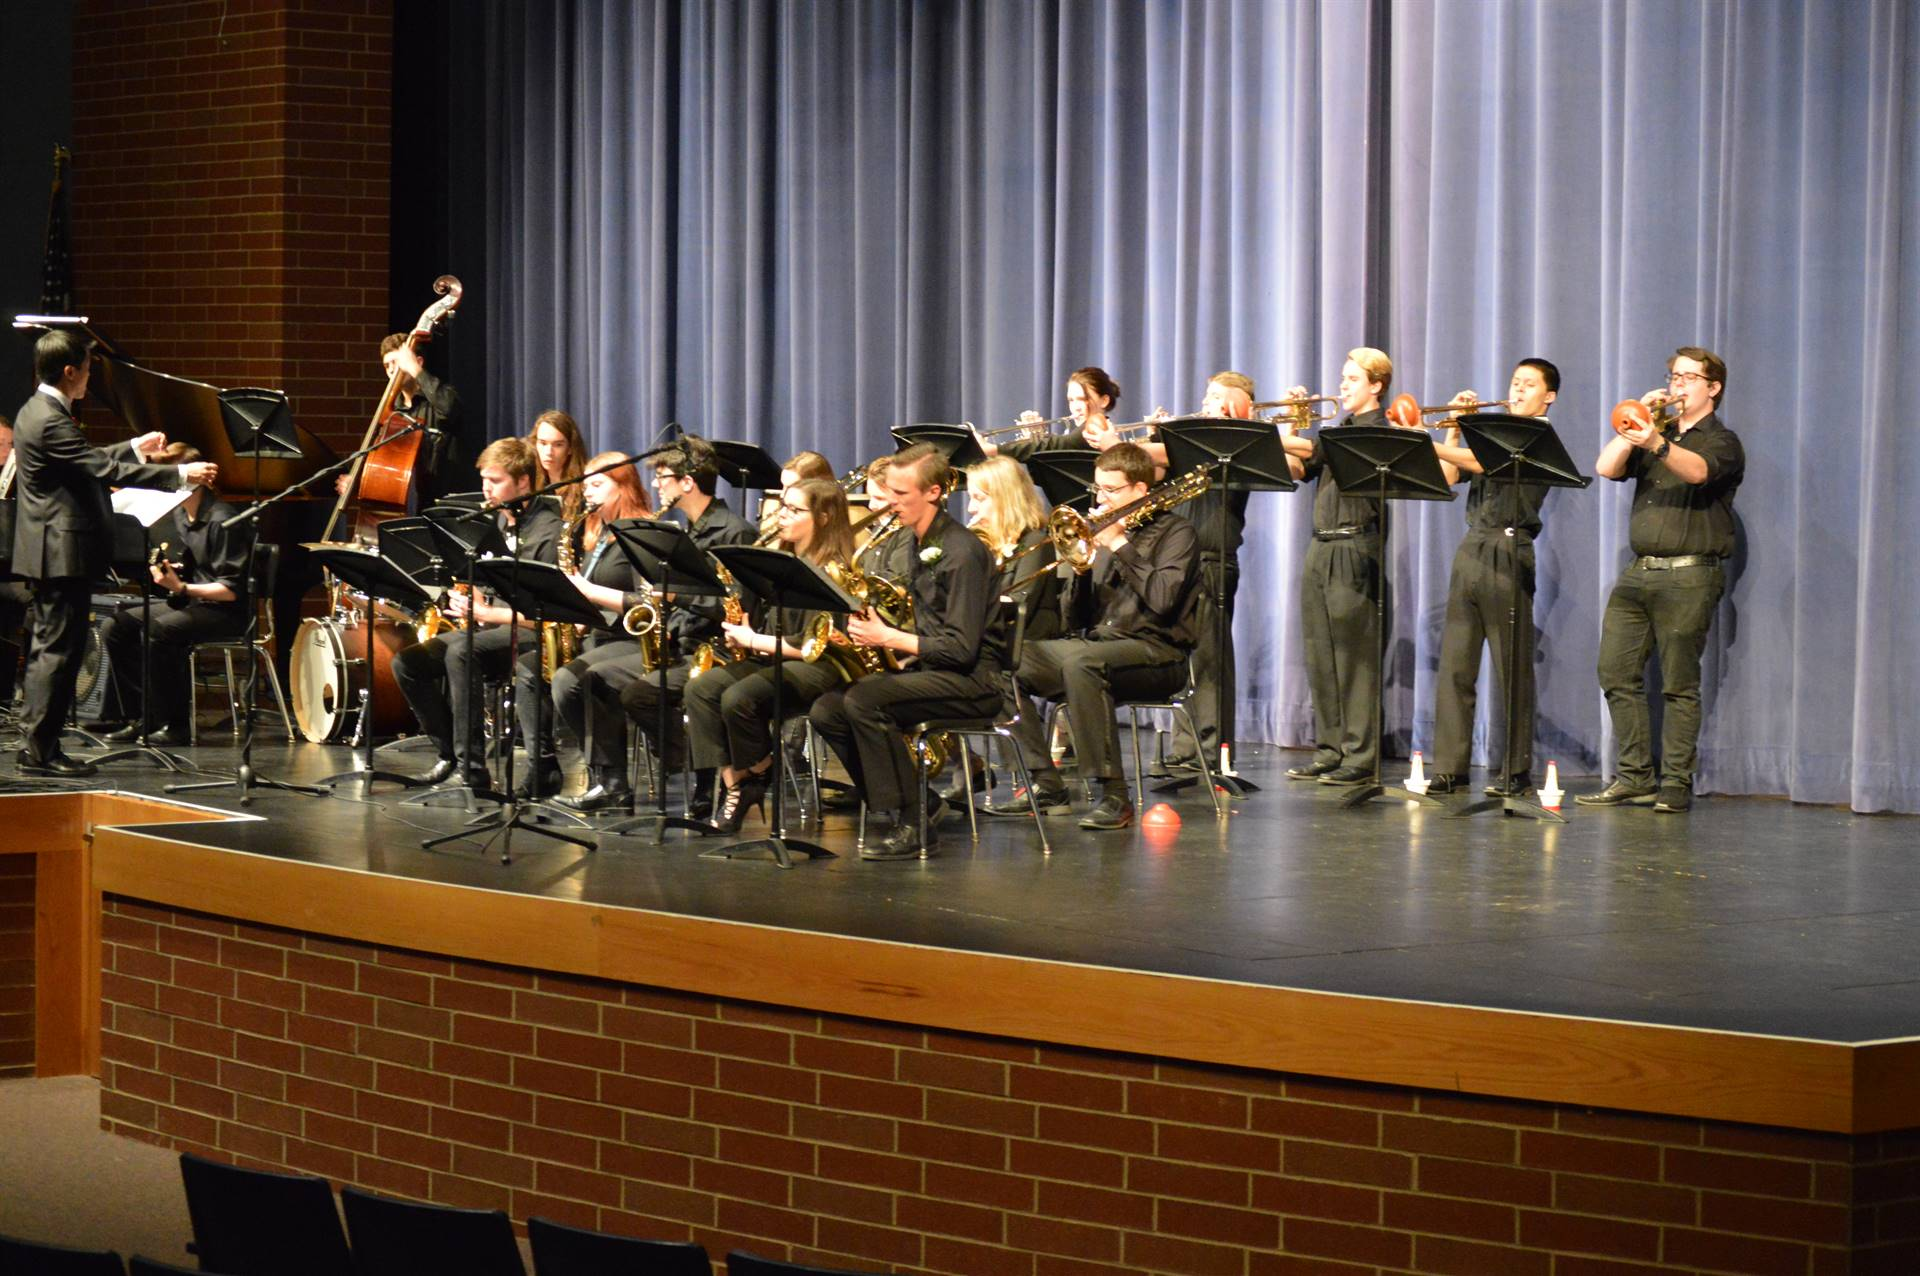 Jazz Band on stage performing